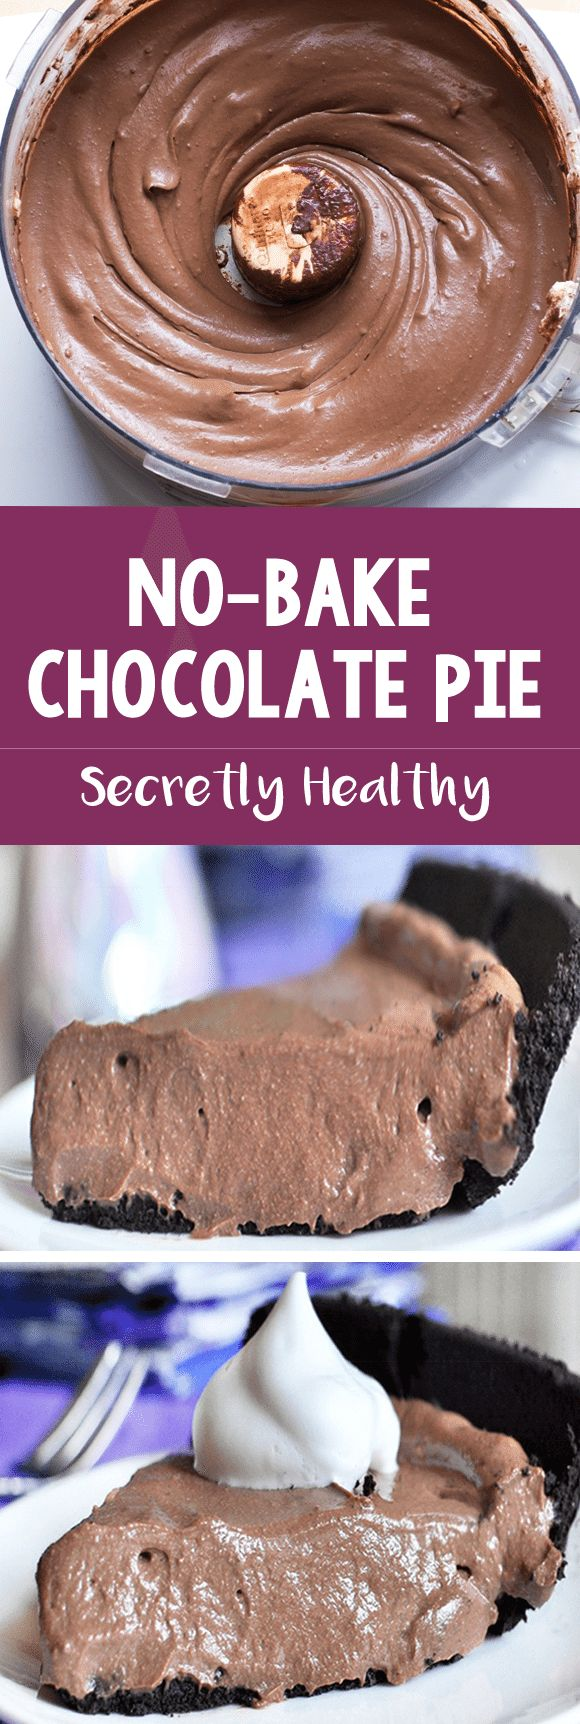 Chocolate pie with tofu. With fewer than 150 calories per slice, this creamy chocolate pie is a chocolate lover's dream come true! @choccoveredkt